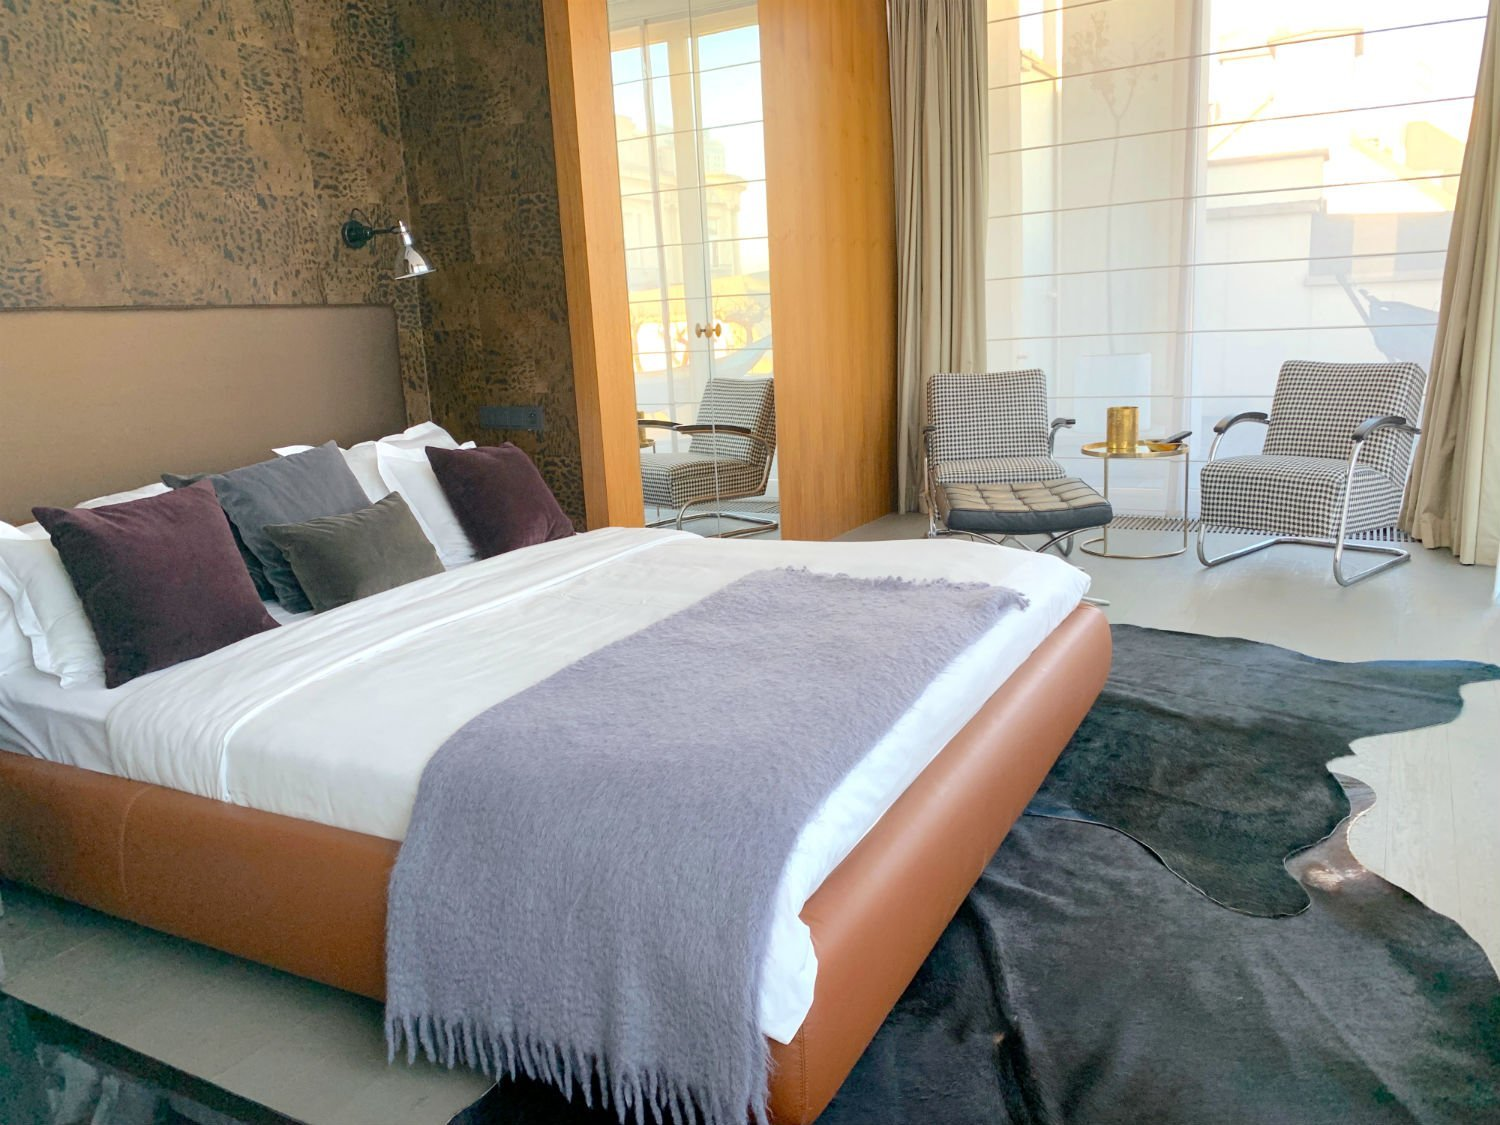 H15 Boutique Hotel - a Warsaw luxury stay 6